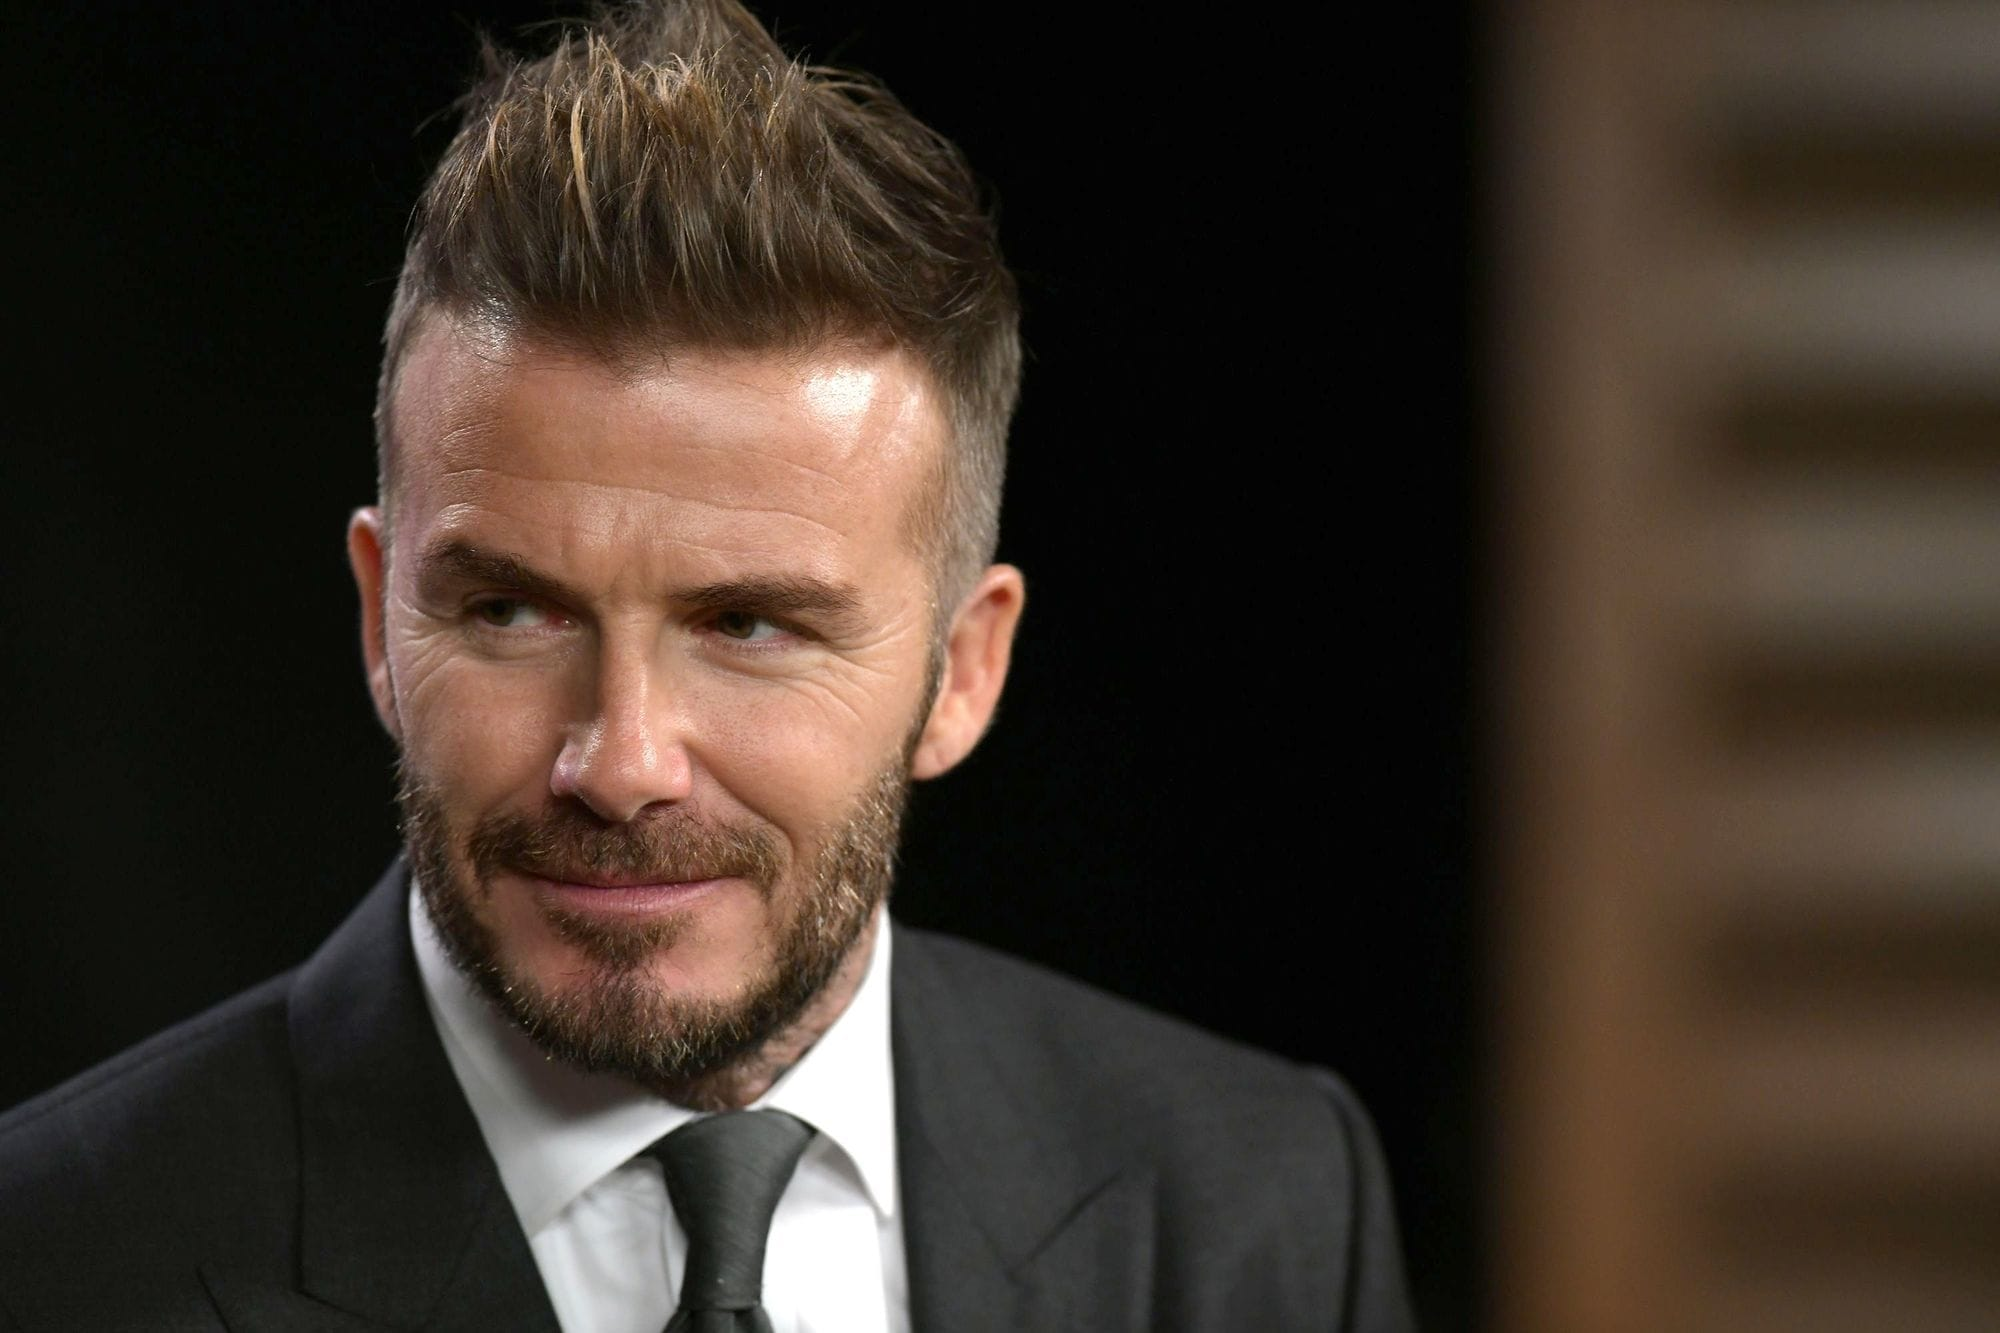 close up shot of david beckham with new swept back quiff and low fade haircut, with neat beard, wearing suit